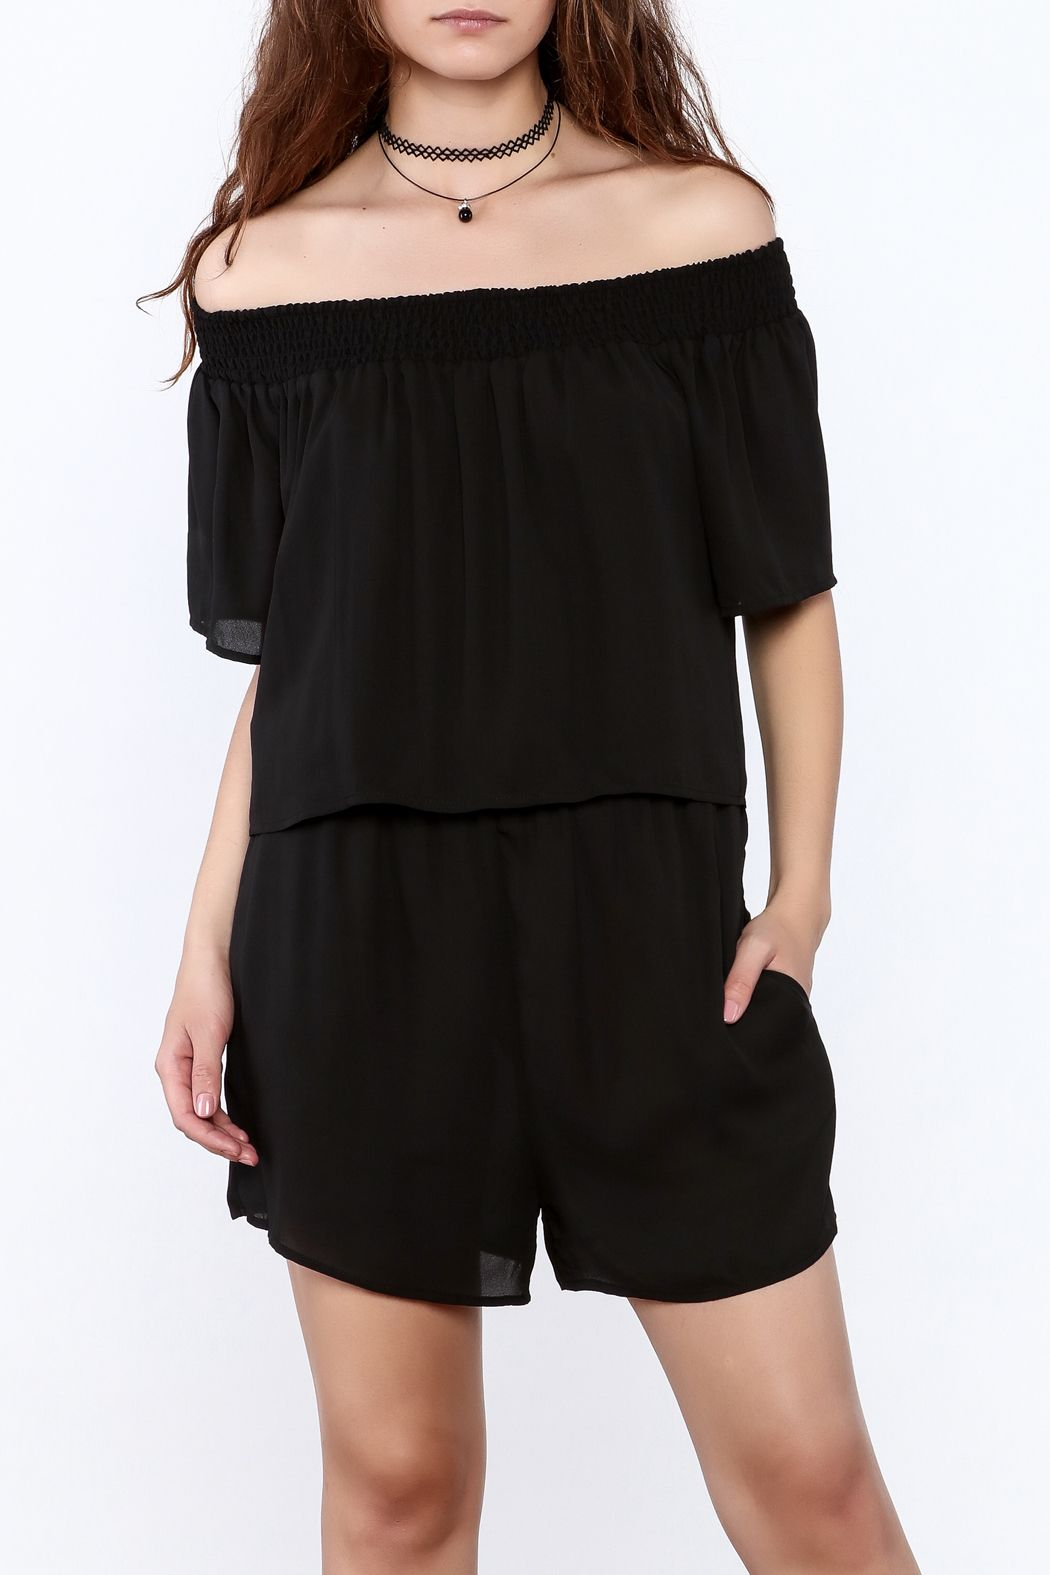 6e7d0eefd938 Black double layer flowy romper with off-shoulder short sleeves and functional  pockets. Smocked shoulder band. Black Flowy Romper by Dora Landa.